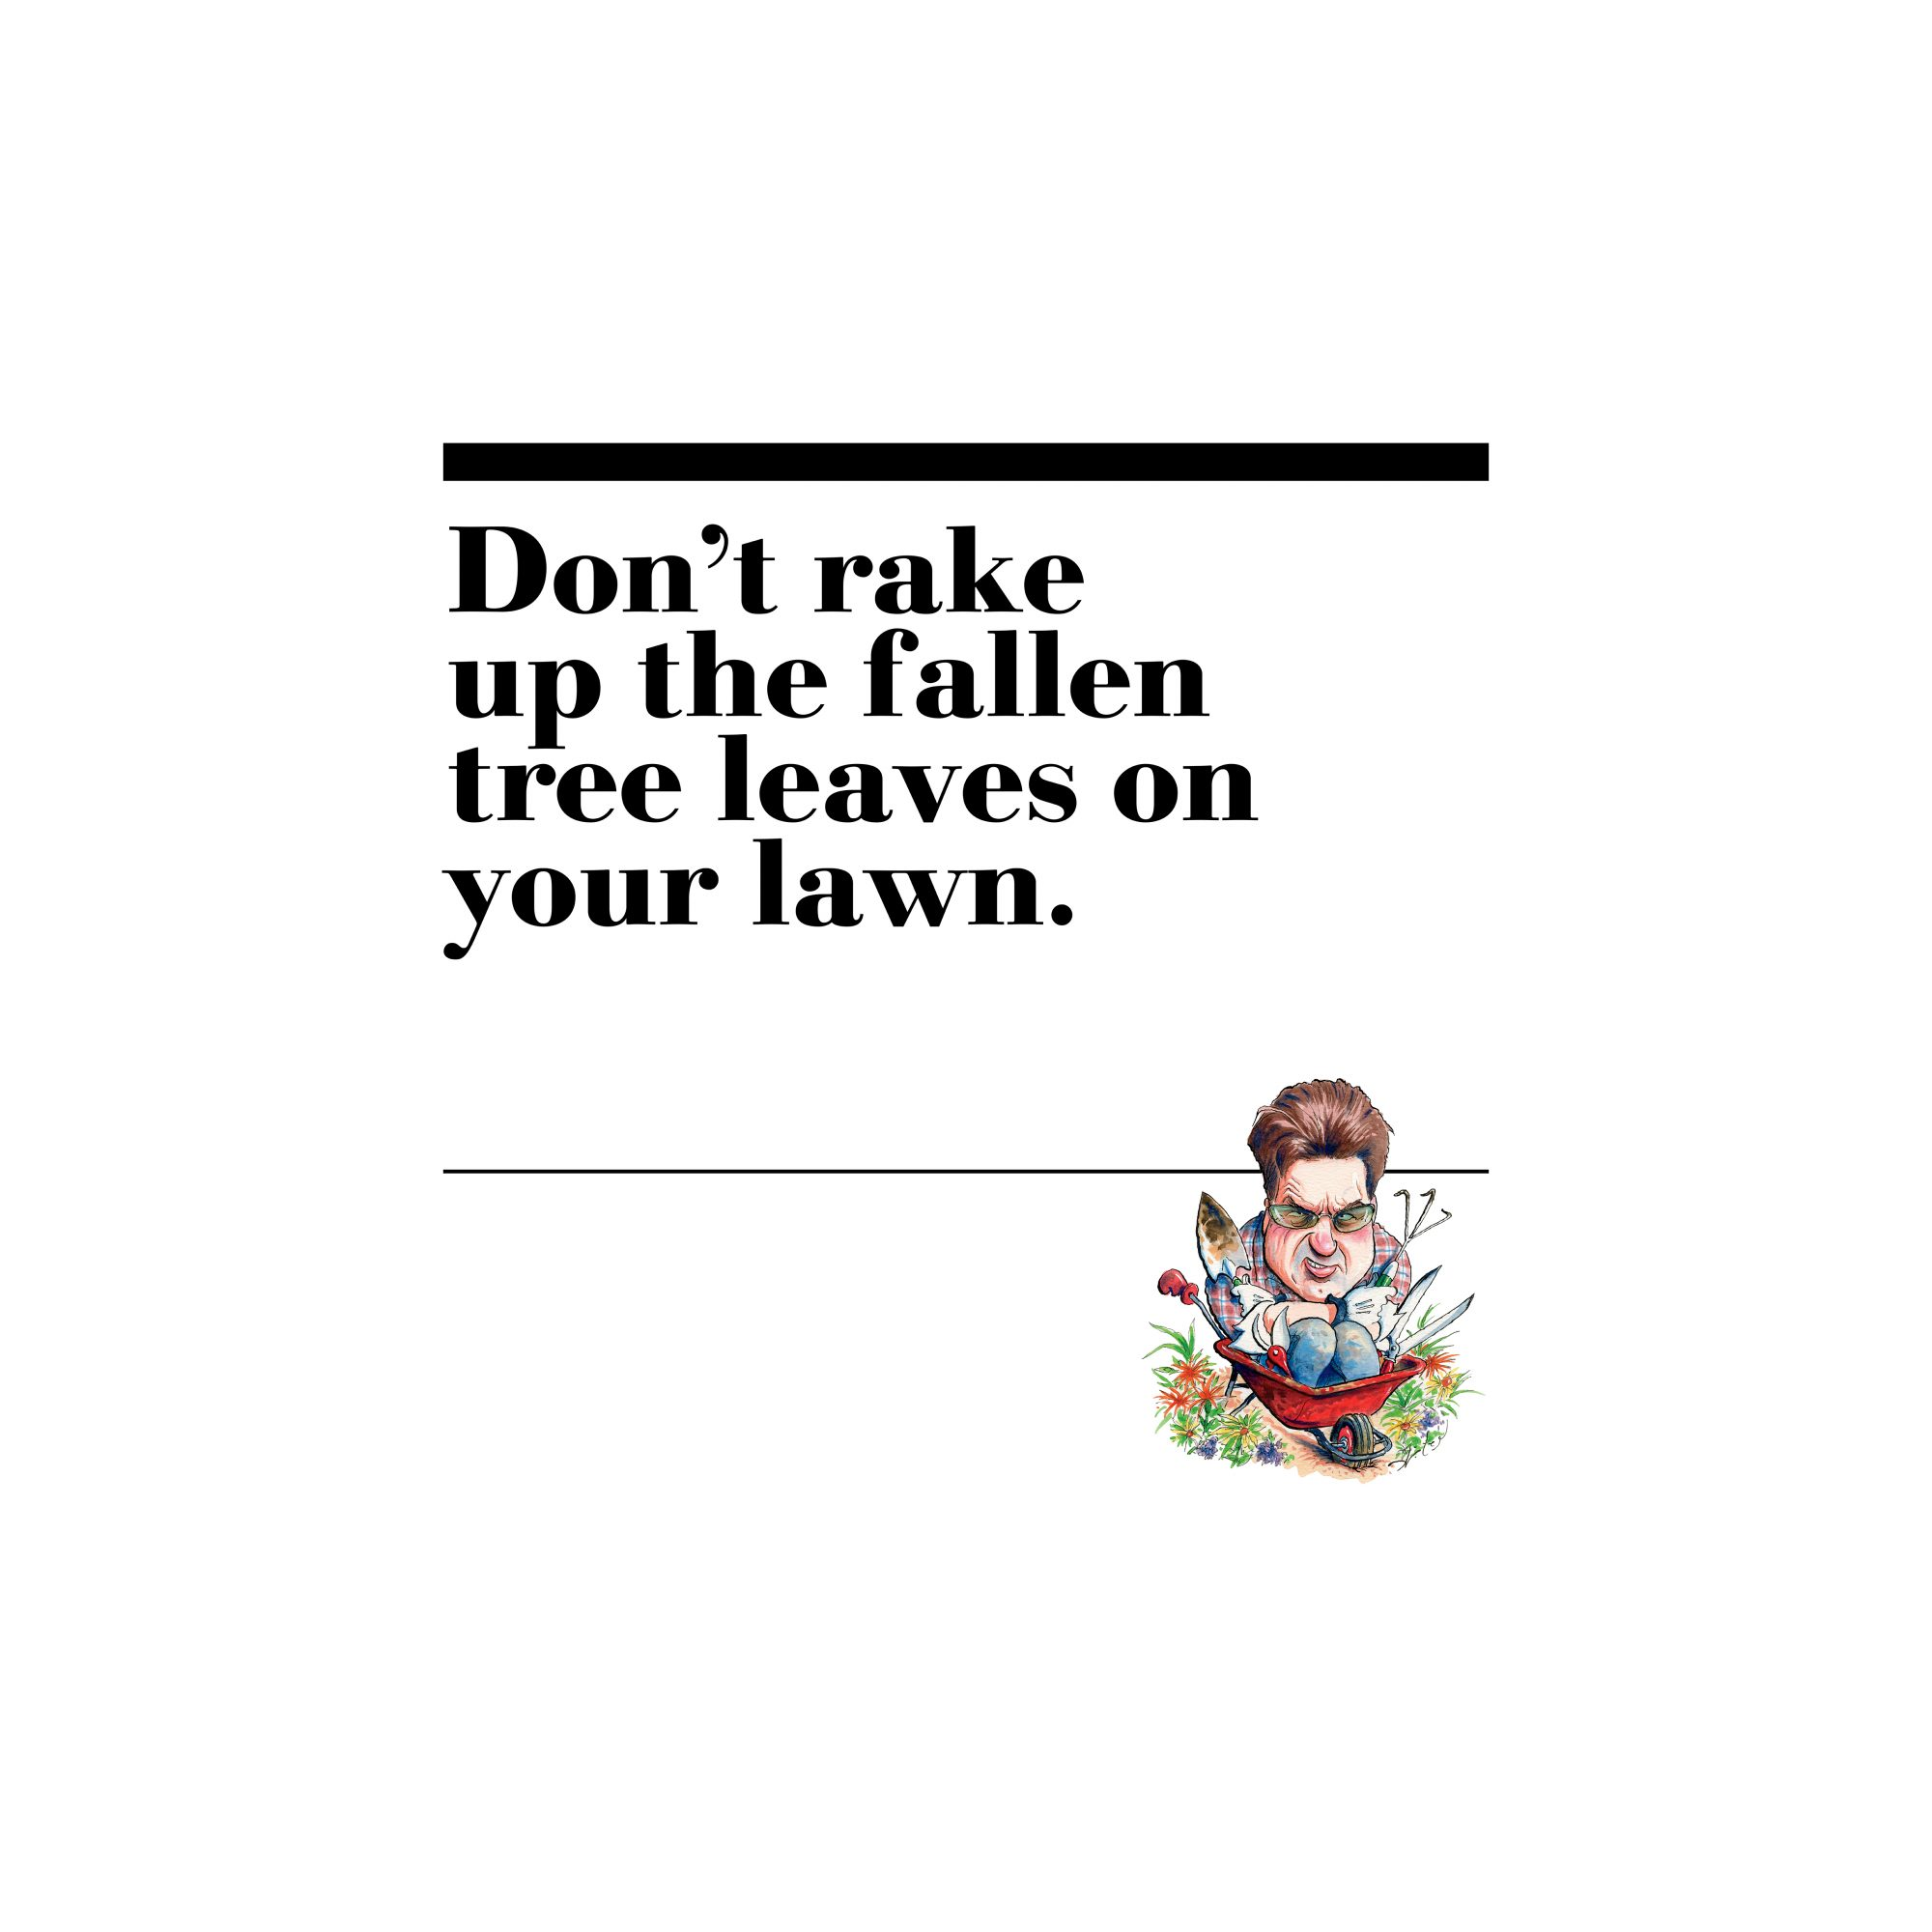 38. Don't rake up the fallen tree leaves on your lawn.